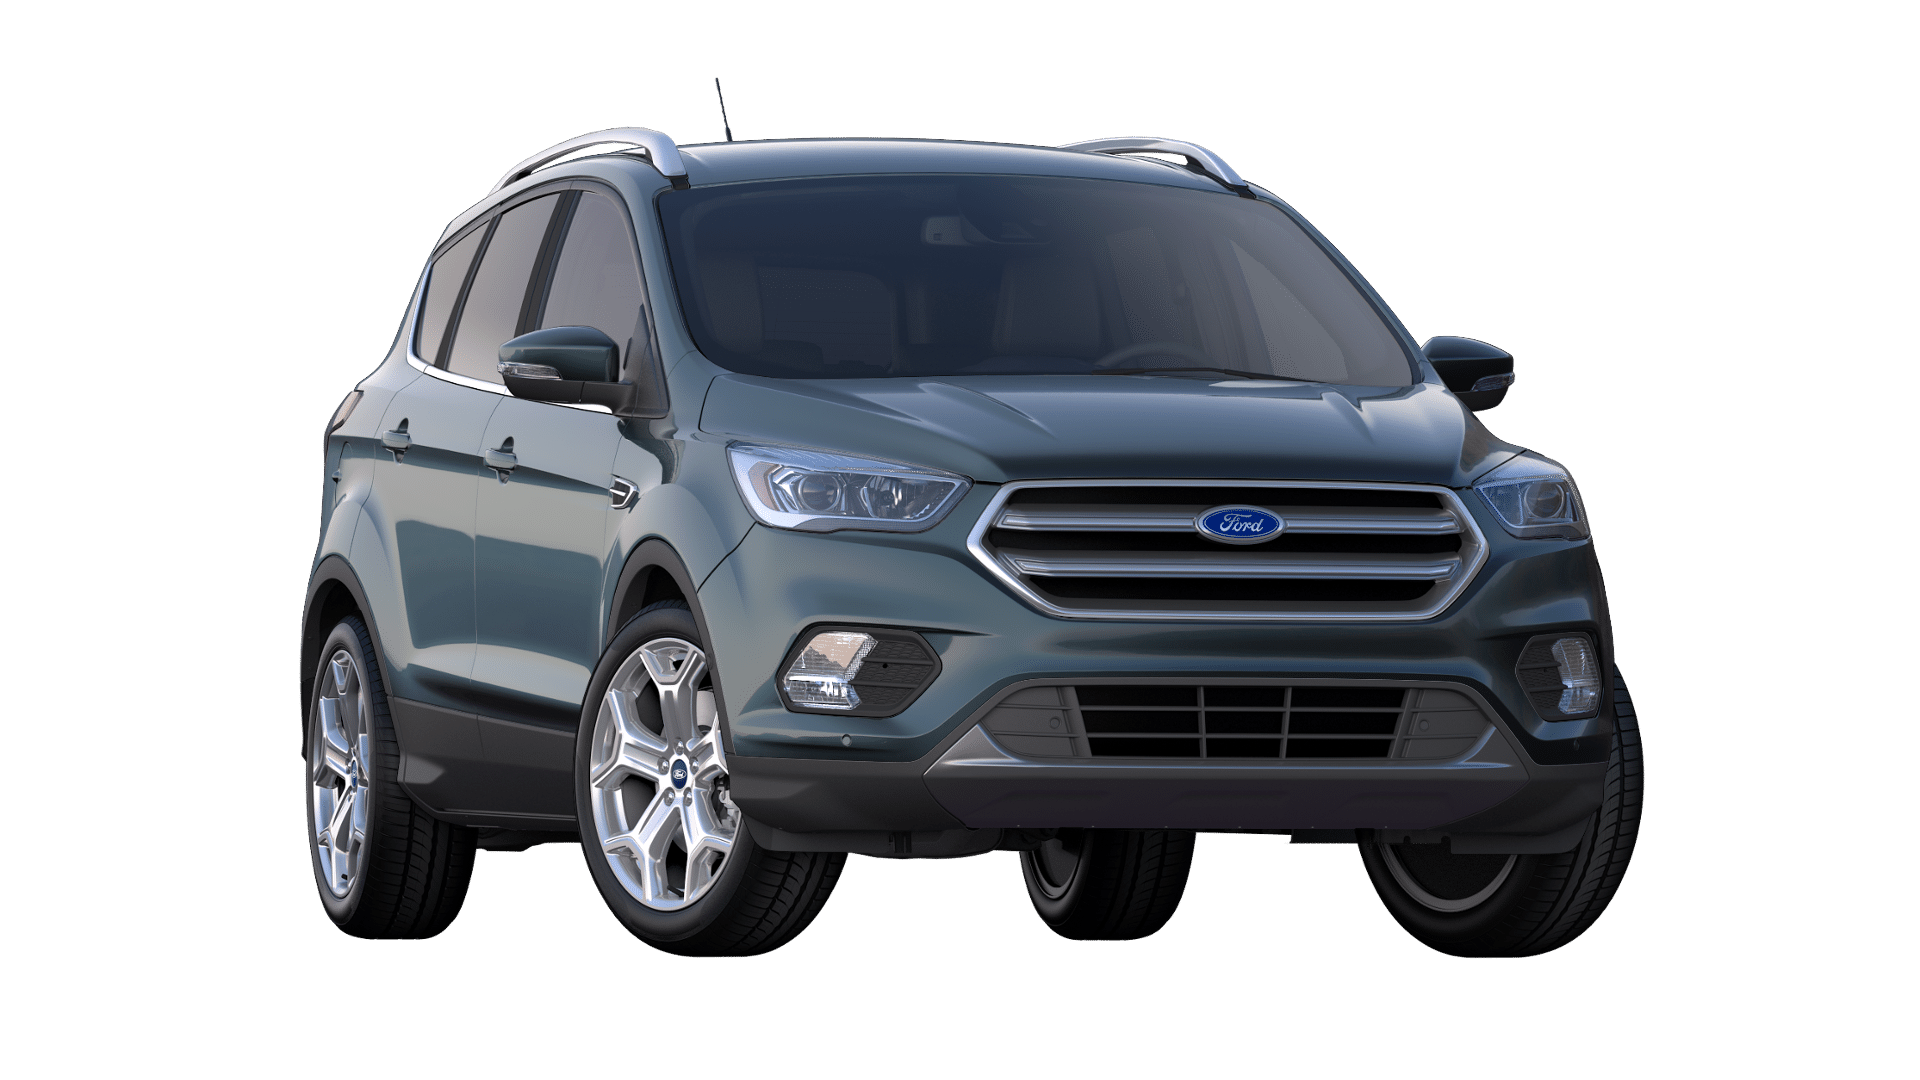 2019 Ford Escape Baltic Sea Green Exterior Color